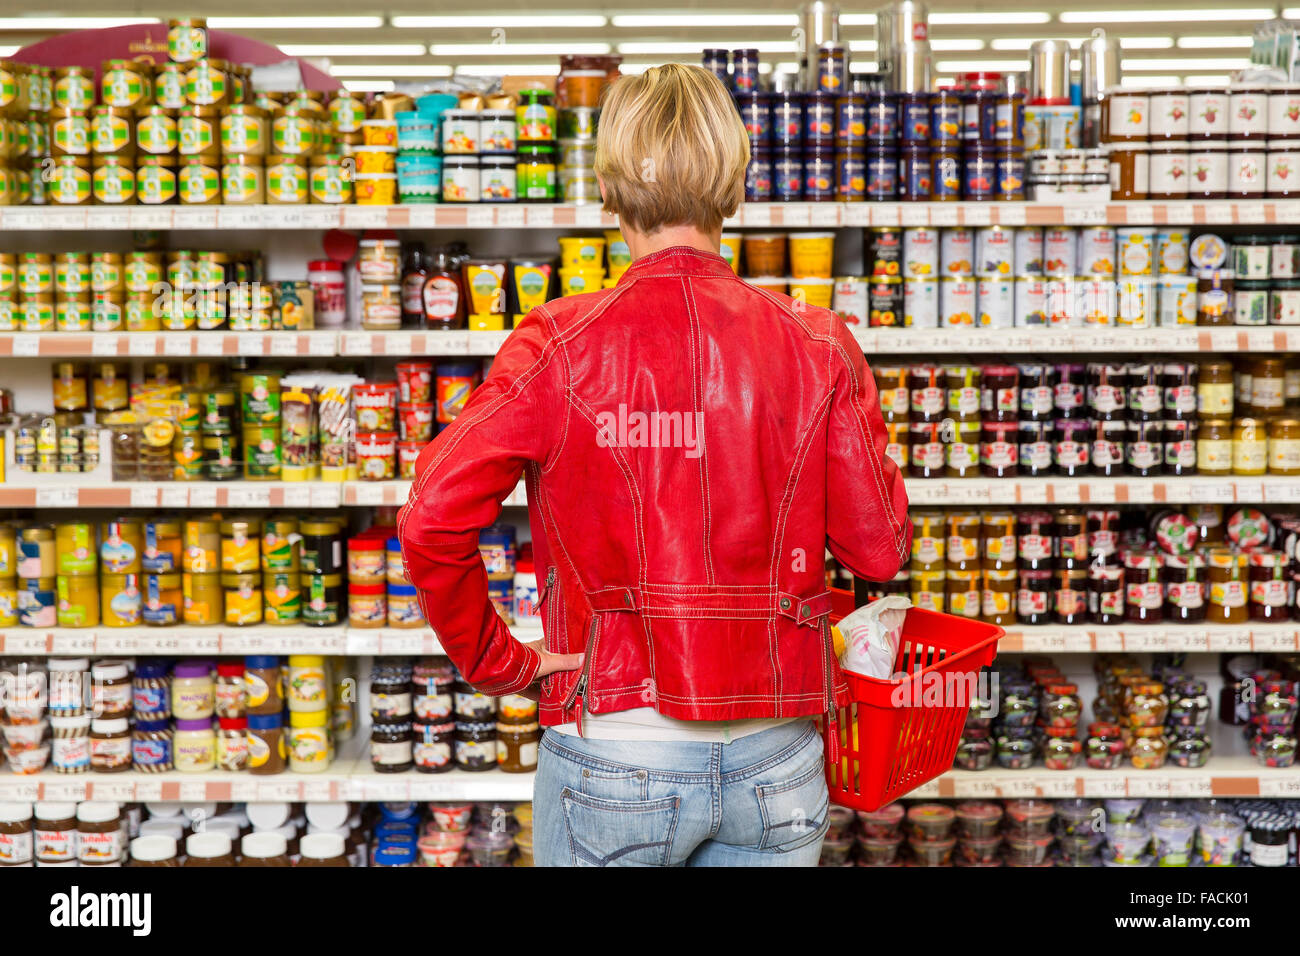 Woman in supermarket shelf before with many products - Stock Image